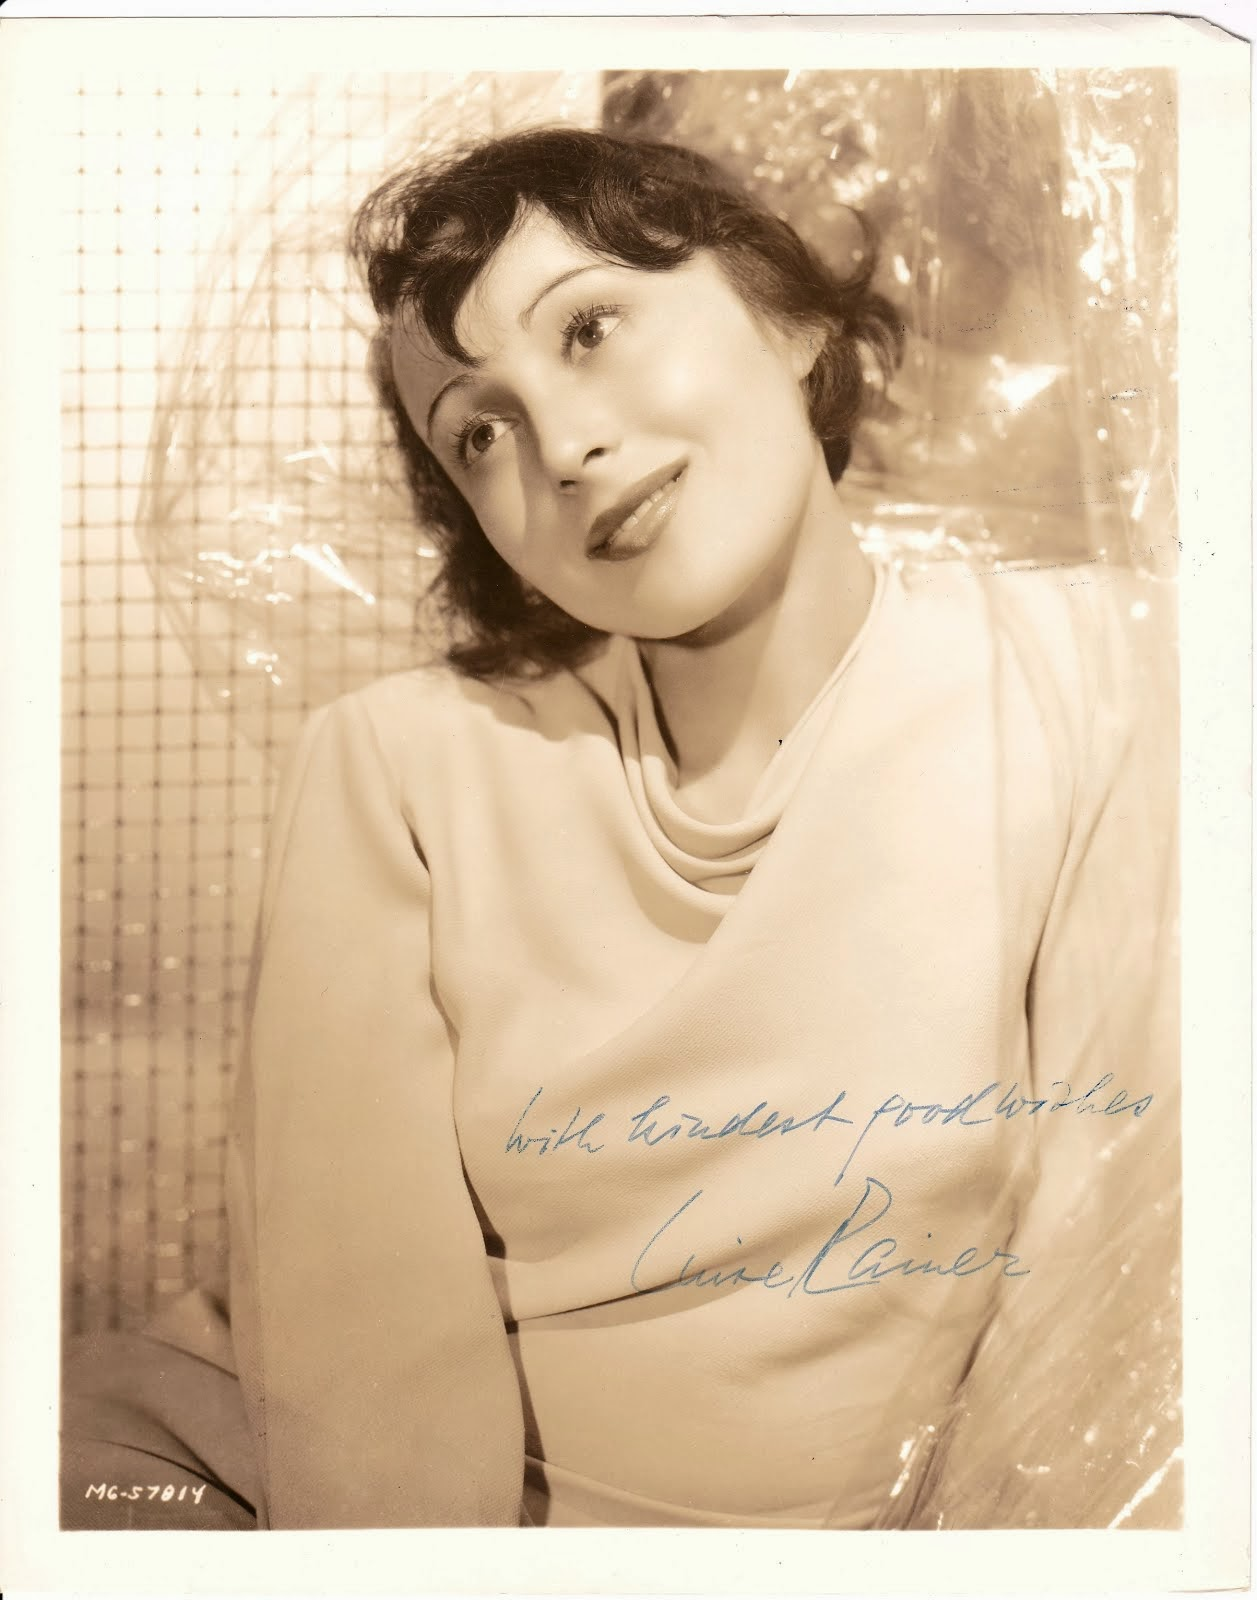 Two time Academy Award Winner Luise Rainer VINTAGE 8x10 auto. Photo $99.99 or best offer